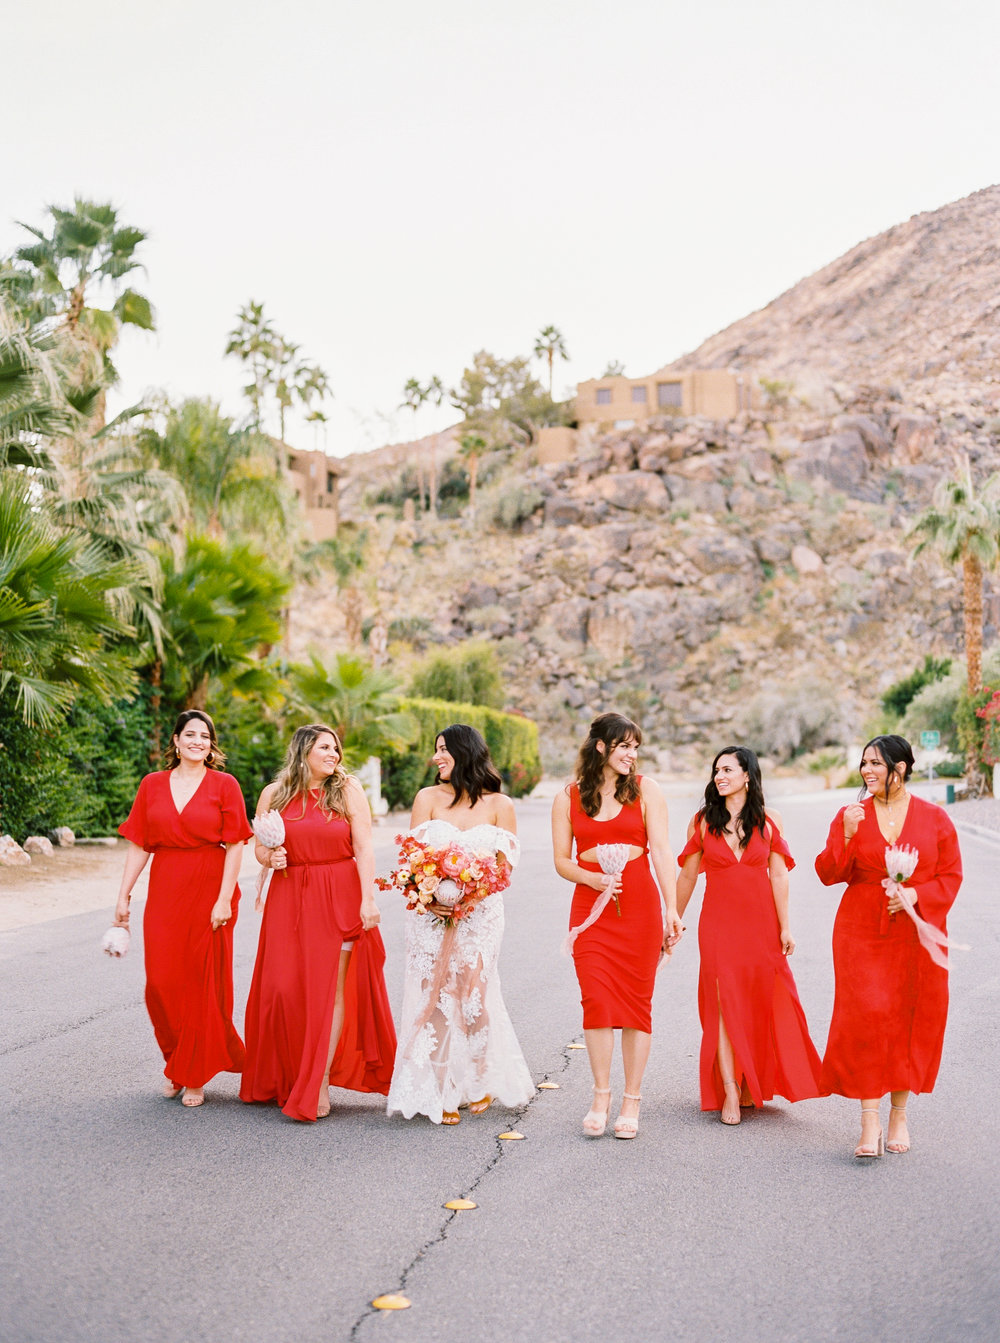 PALM SPRINGS WEDDING, BRIDESMAIDS RED DRESSES